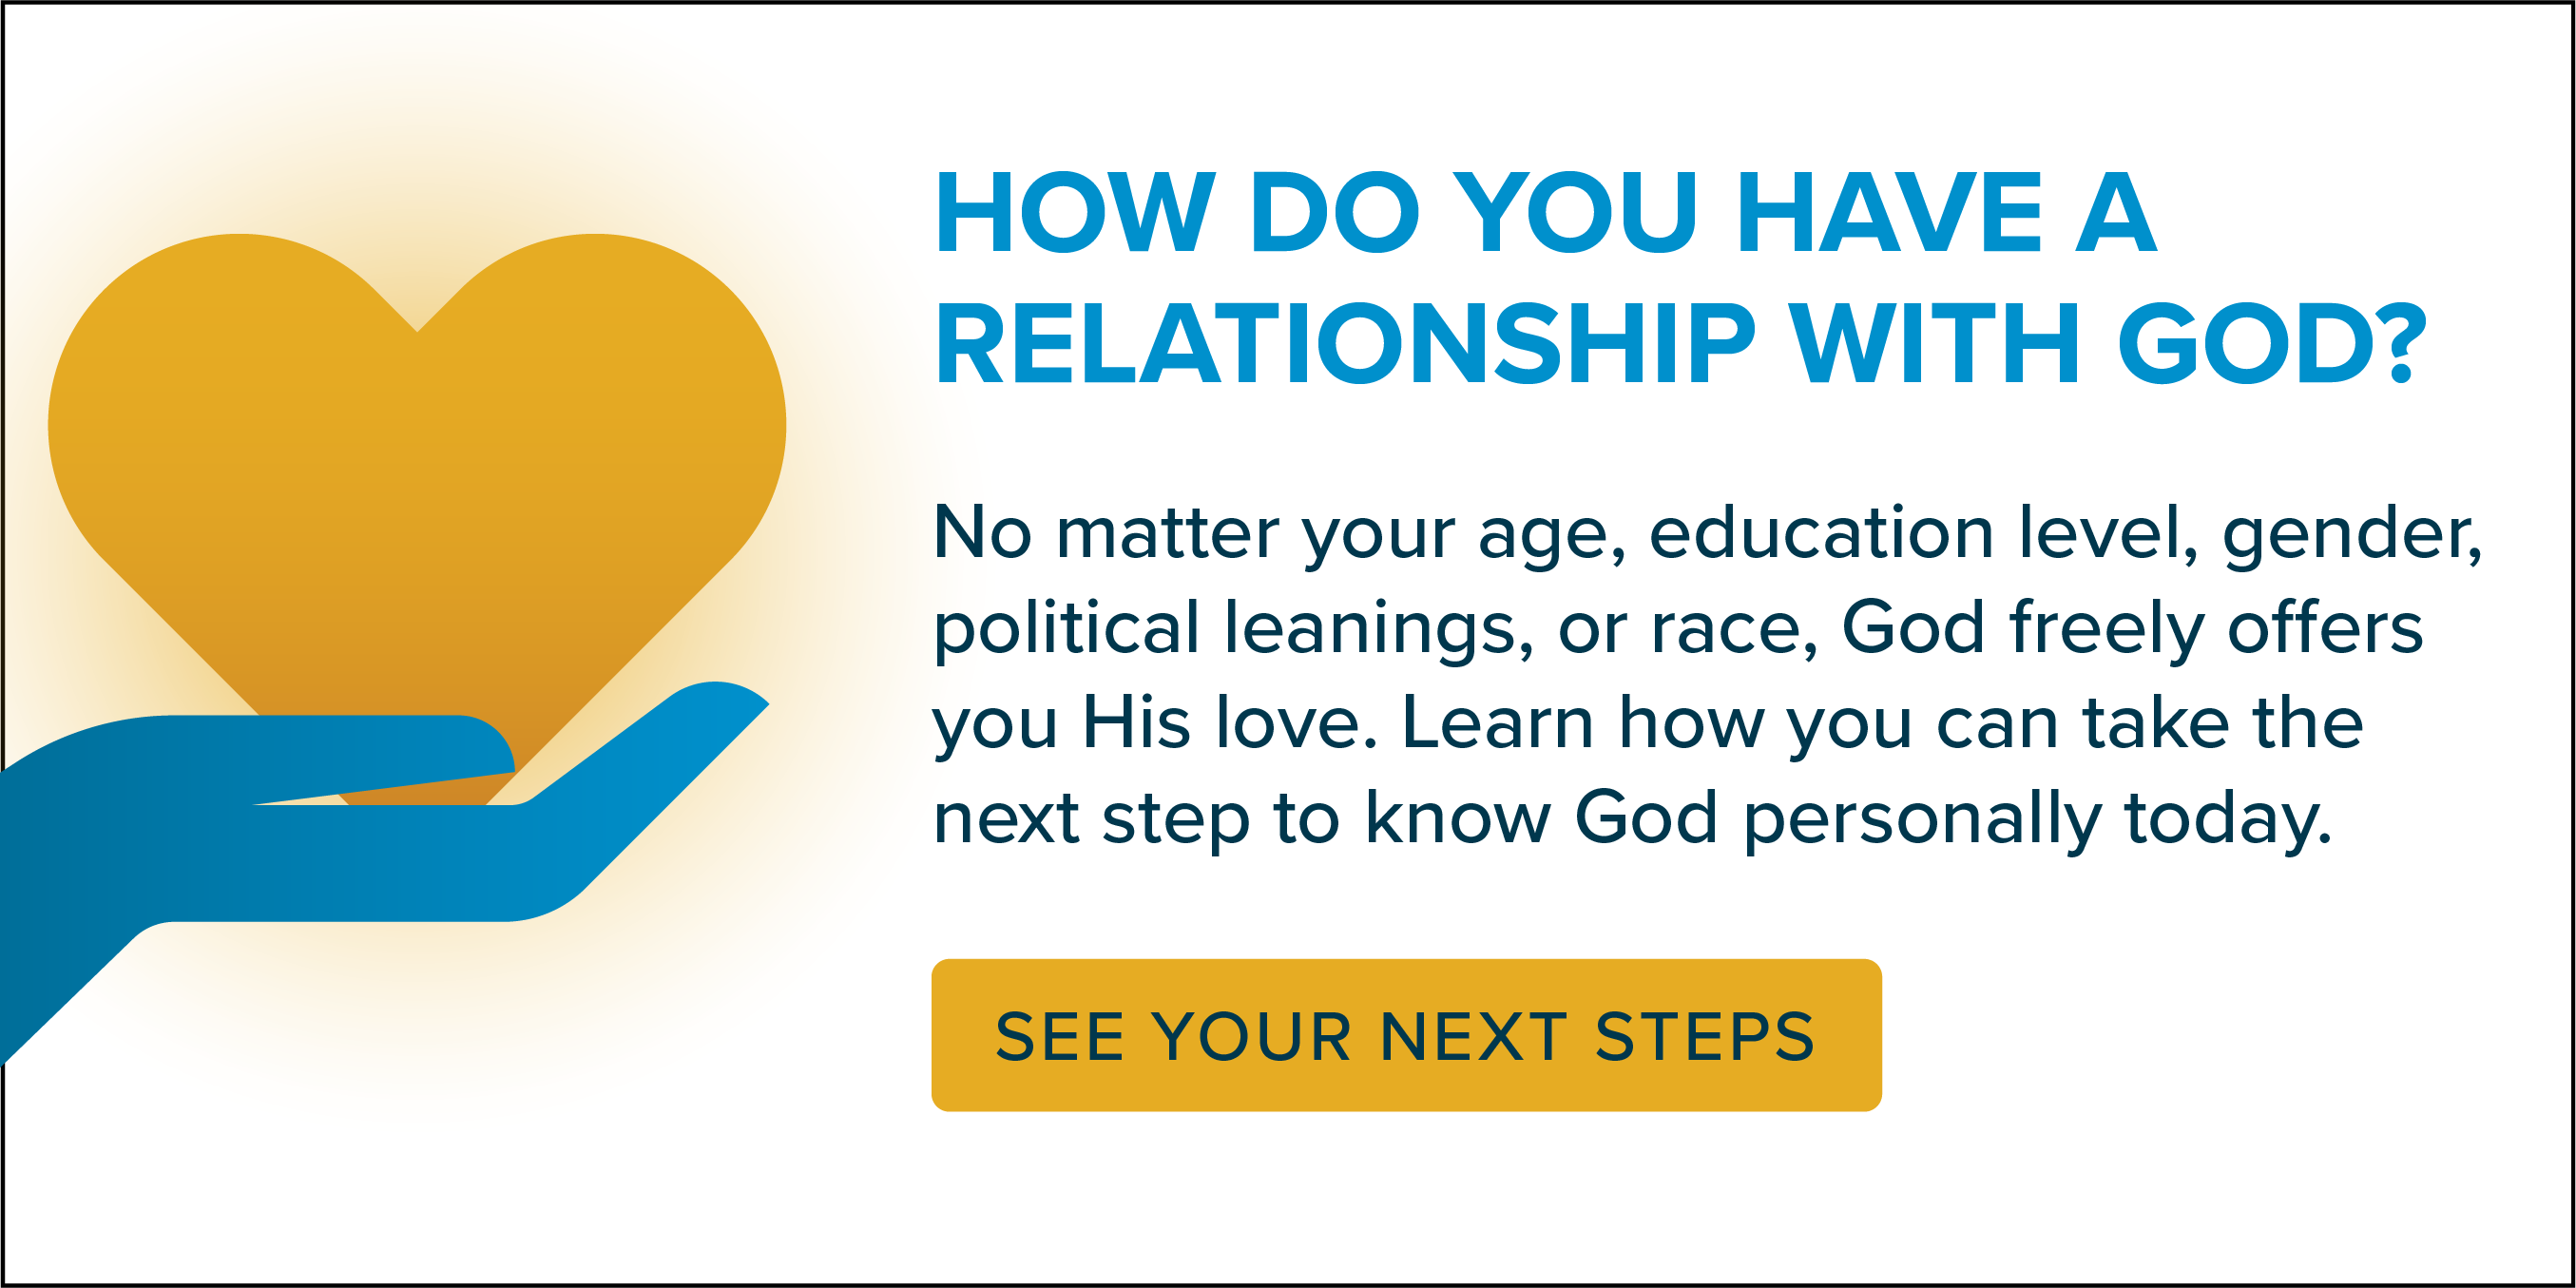 How do you have a relationship with God? See next steps.